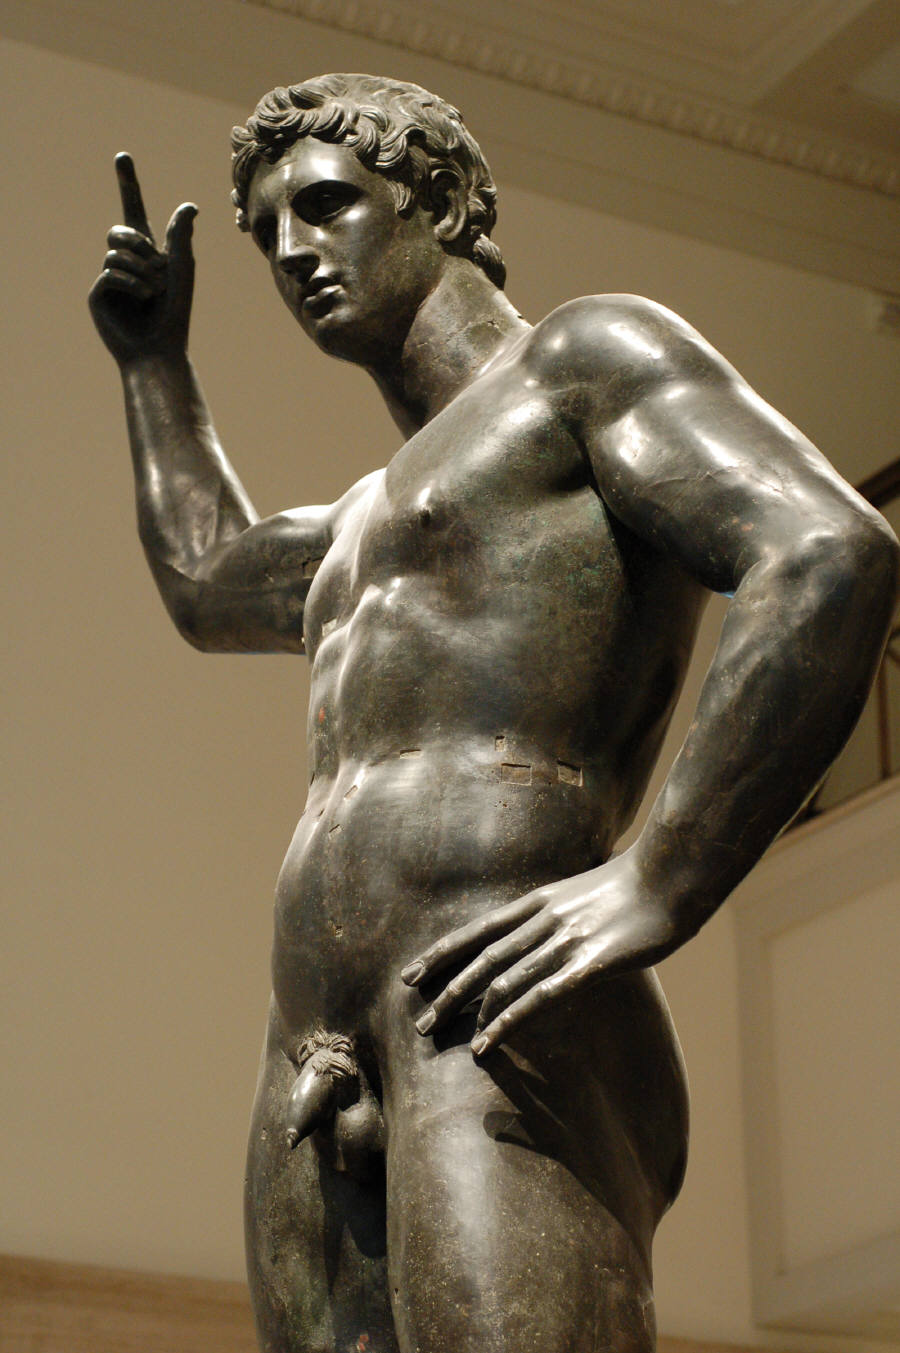 You Greek male nude statues have